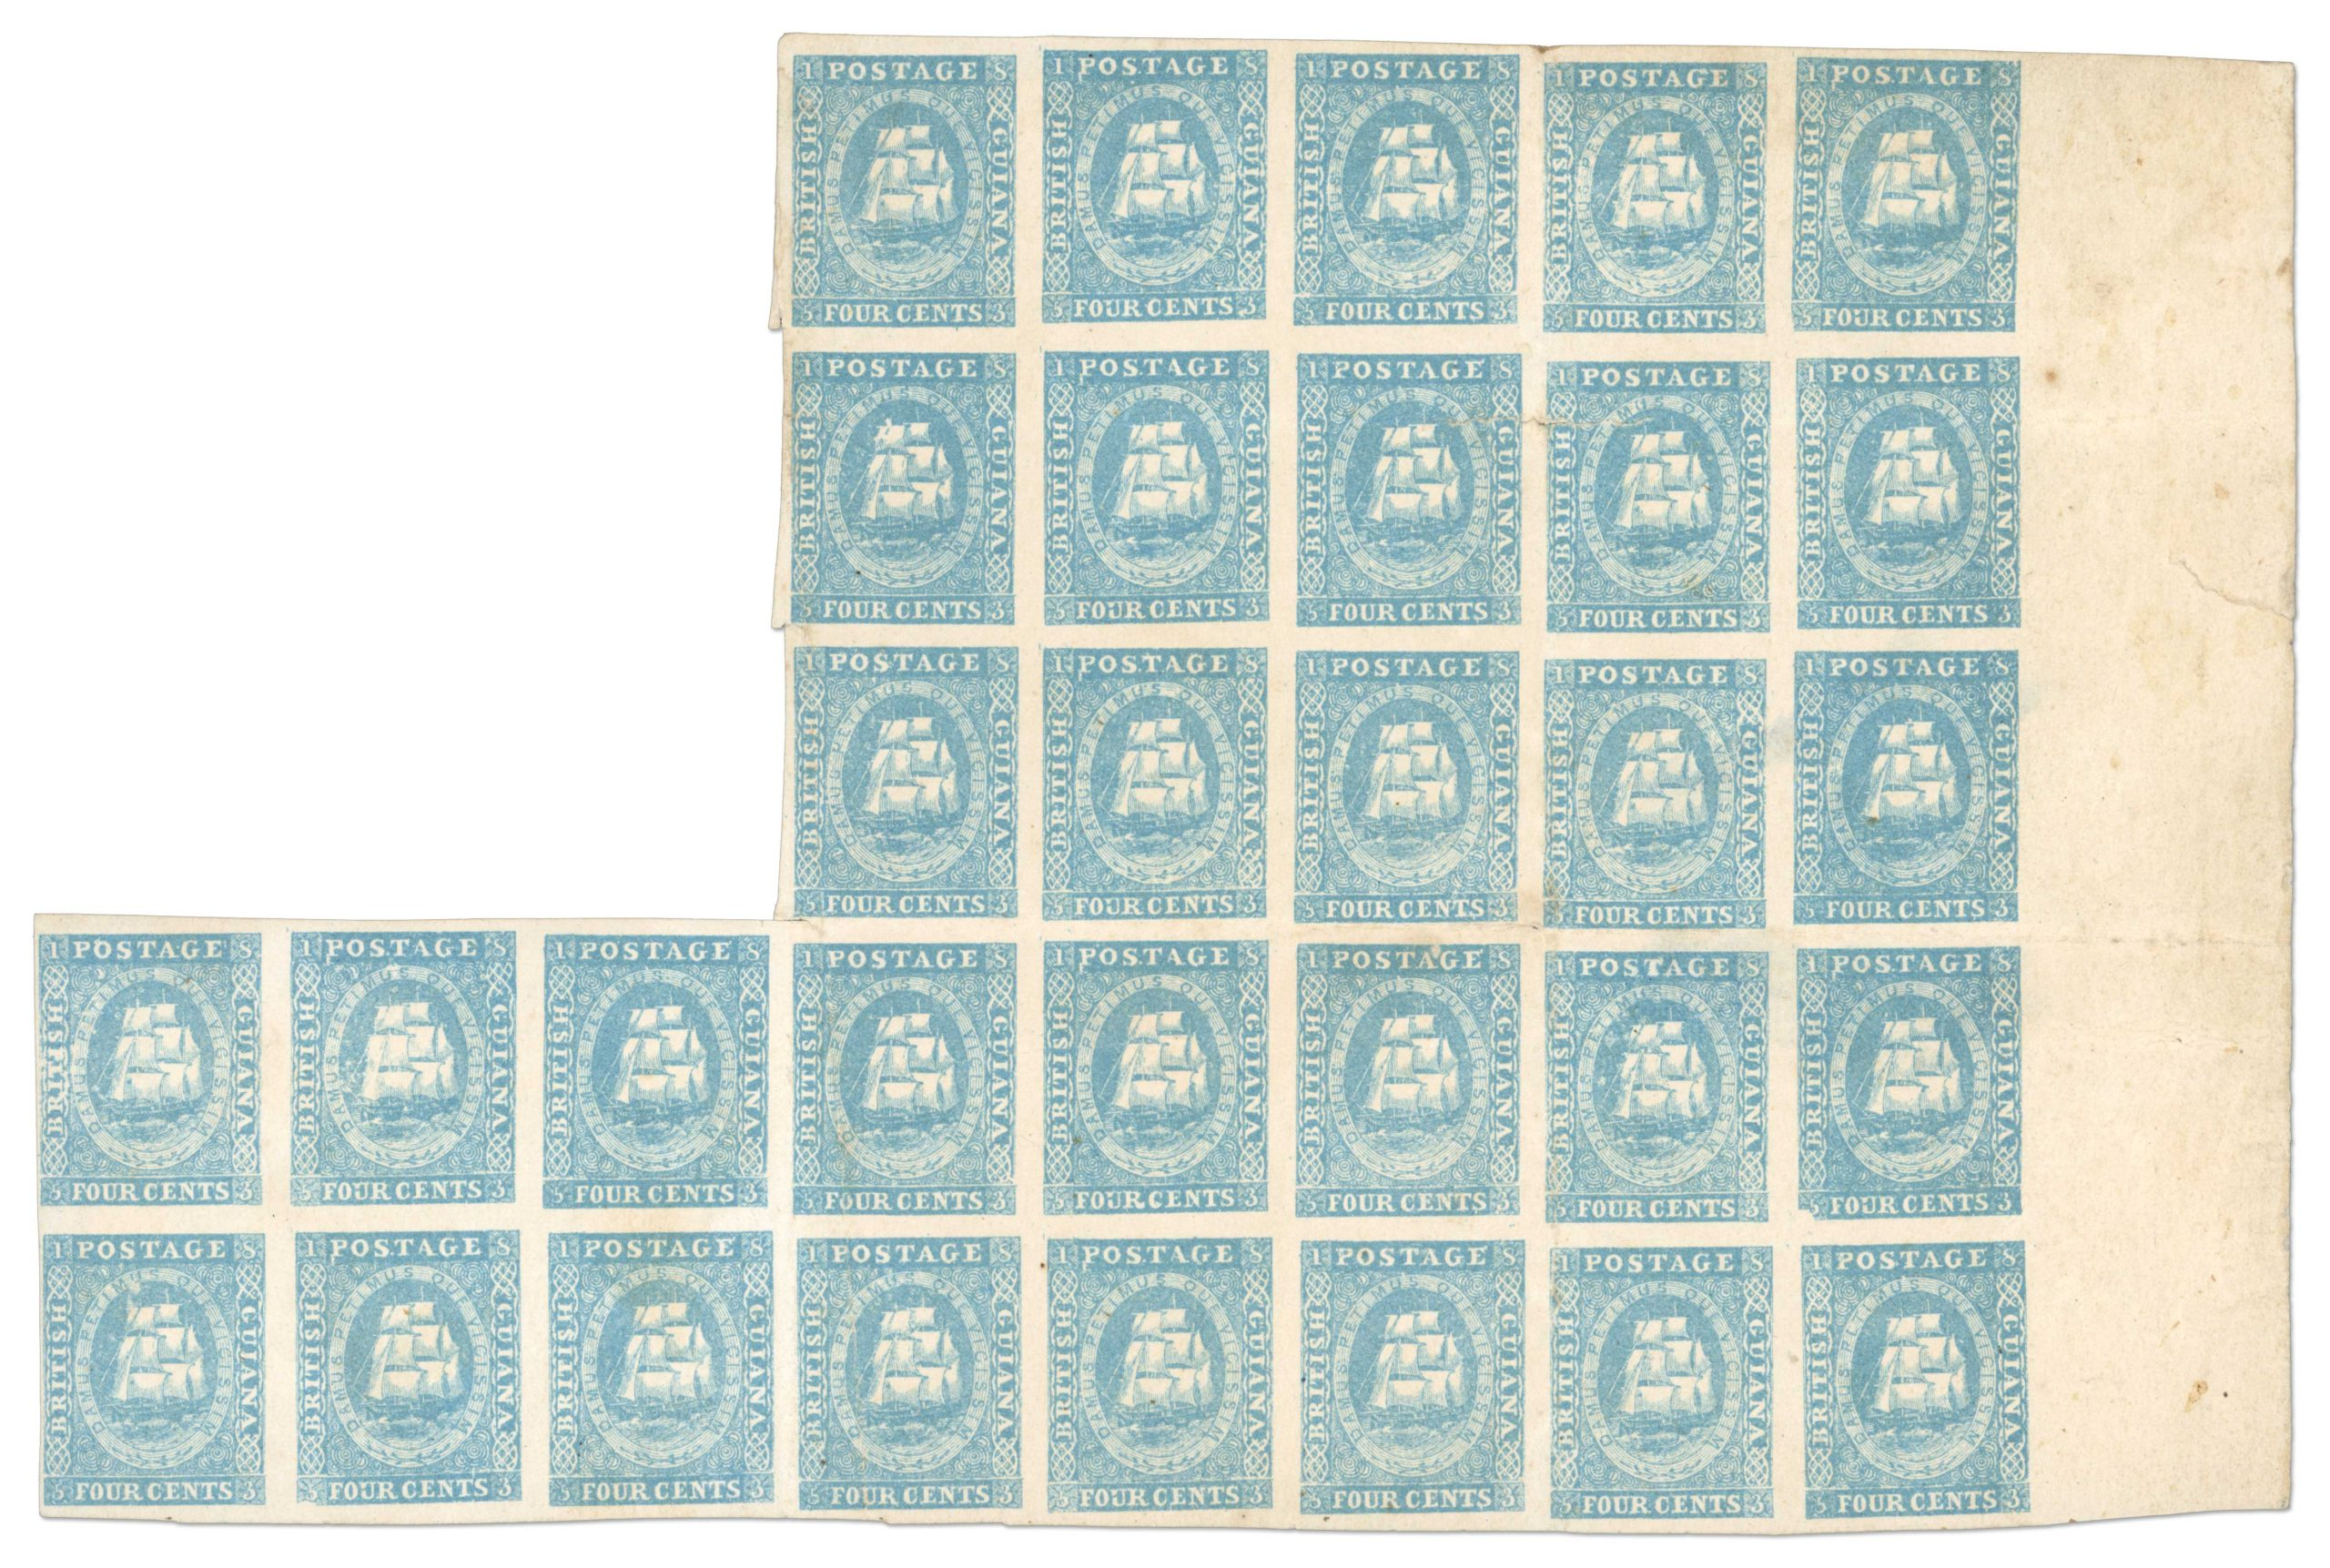 1853-55 Waterlow Lithographed 4 cent pale blue unused block of 31